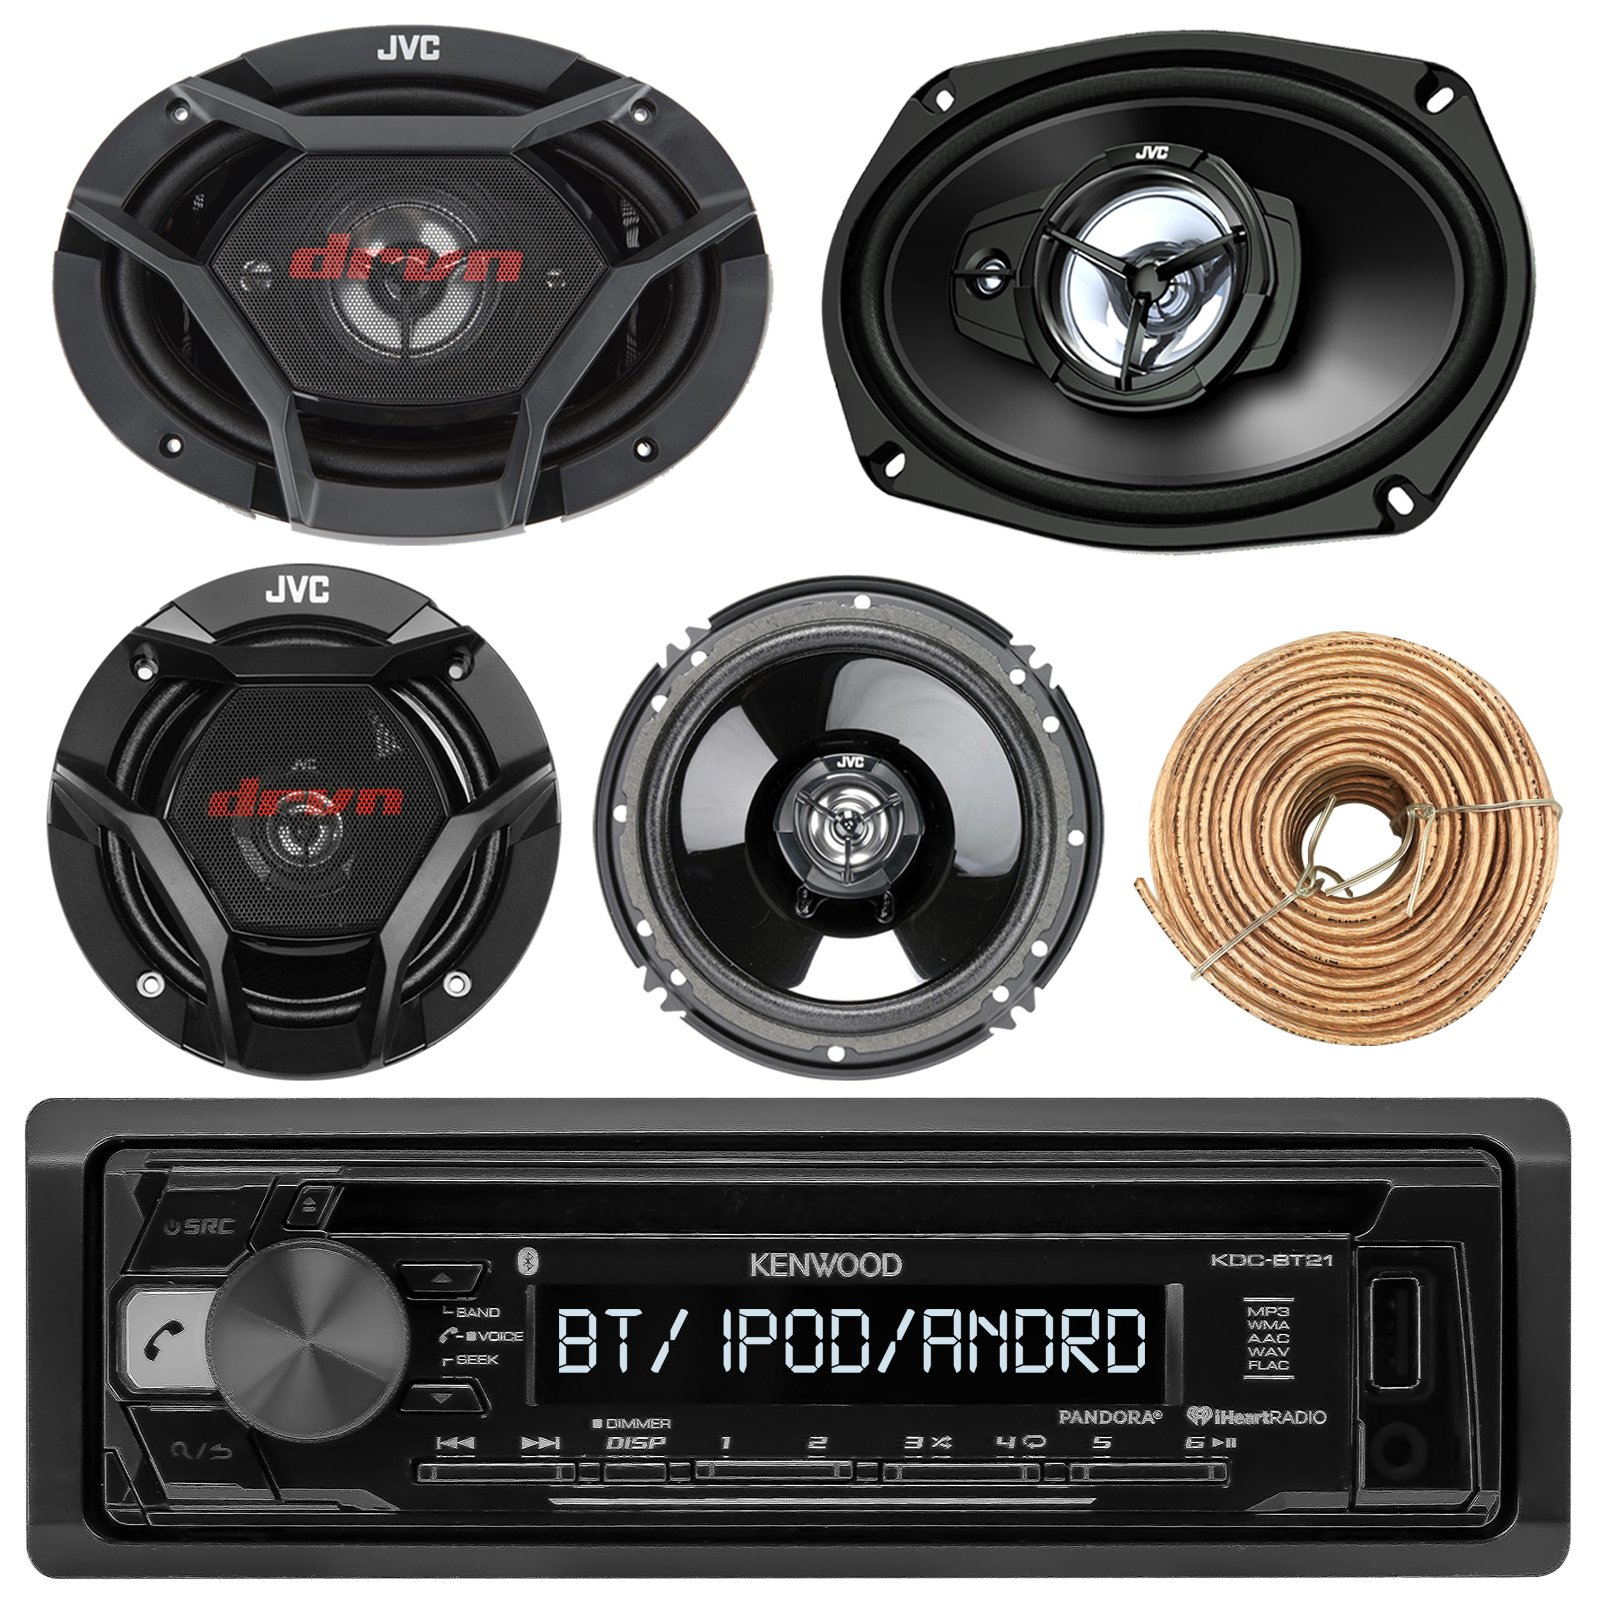 Kenwood KDCBT21 Car CD Player Receiver Bluetooth USB AUX Radio - Bundle Combo With 2x JVC 6x9'' 3-Way Vehicle Coaxial Speakers + 2x 6.5'' Inch 2-Way Audio Speakers + Enrock 50 Ft 18G Speaker Wire